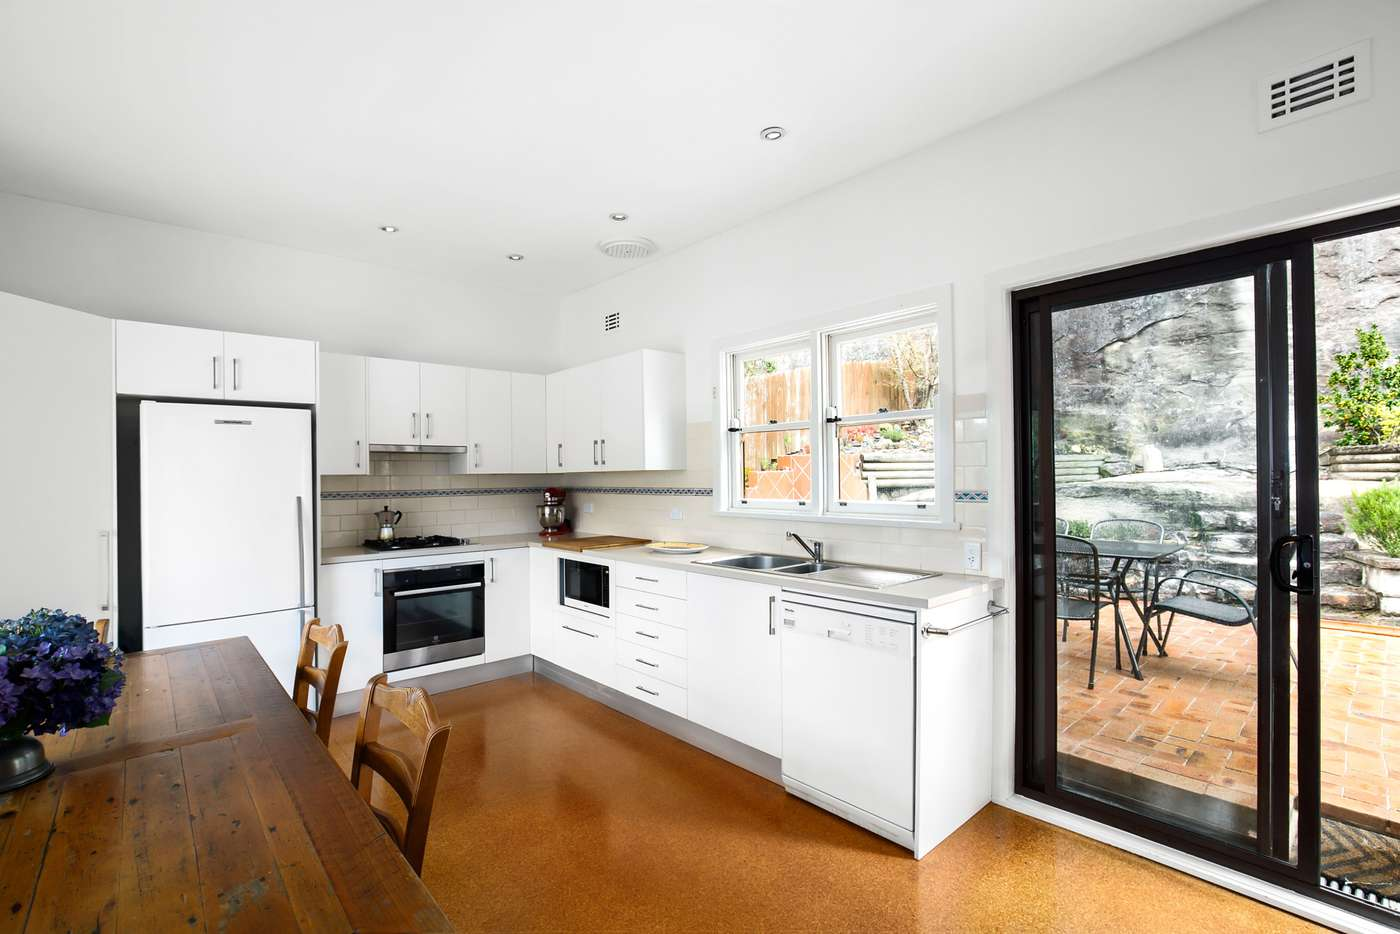 Fifth view of Homely house listing, 55 Lawson Parade, St Ives NSW 2075